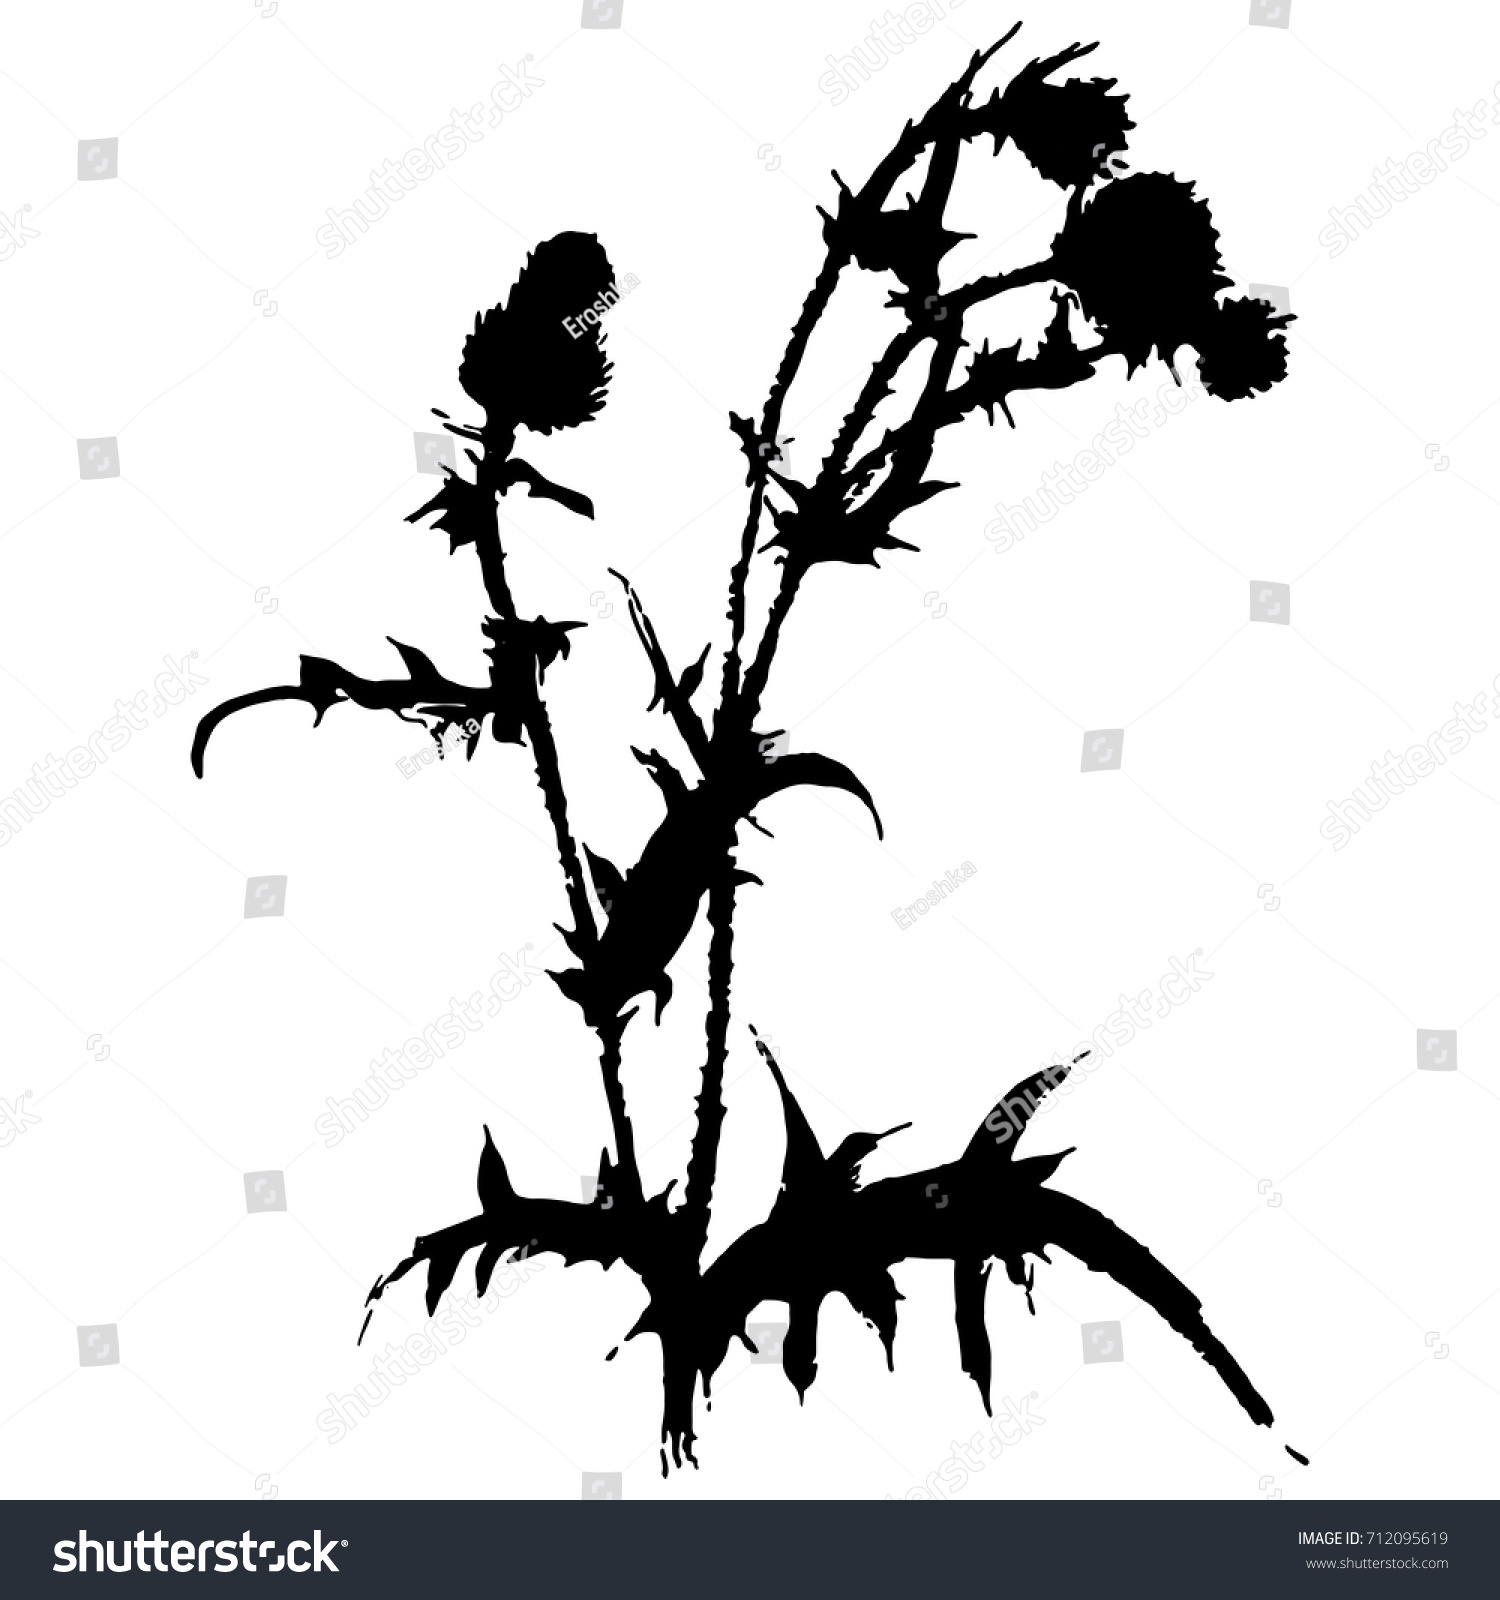 Isolated Black Silhouette Thistle Plant Wild Stock Vector 712095619 ...